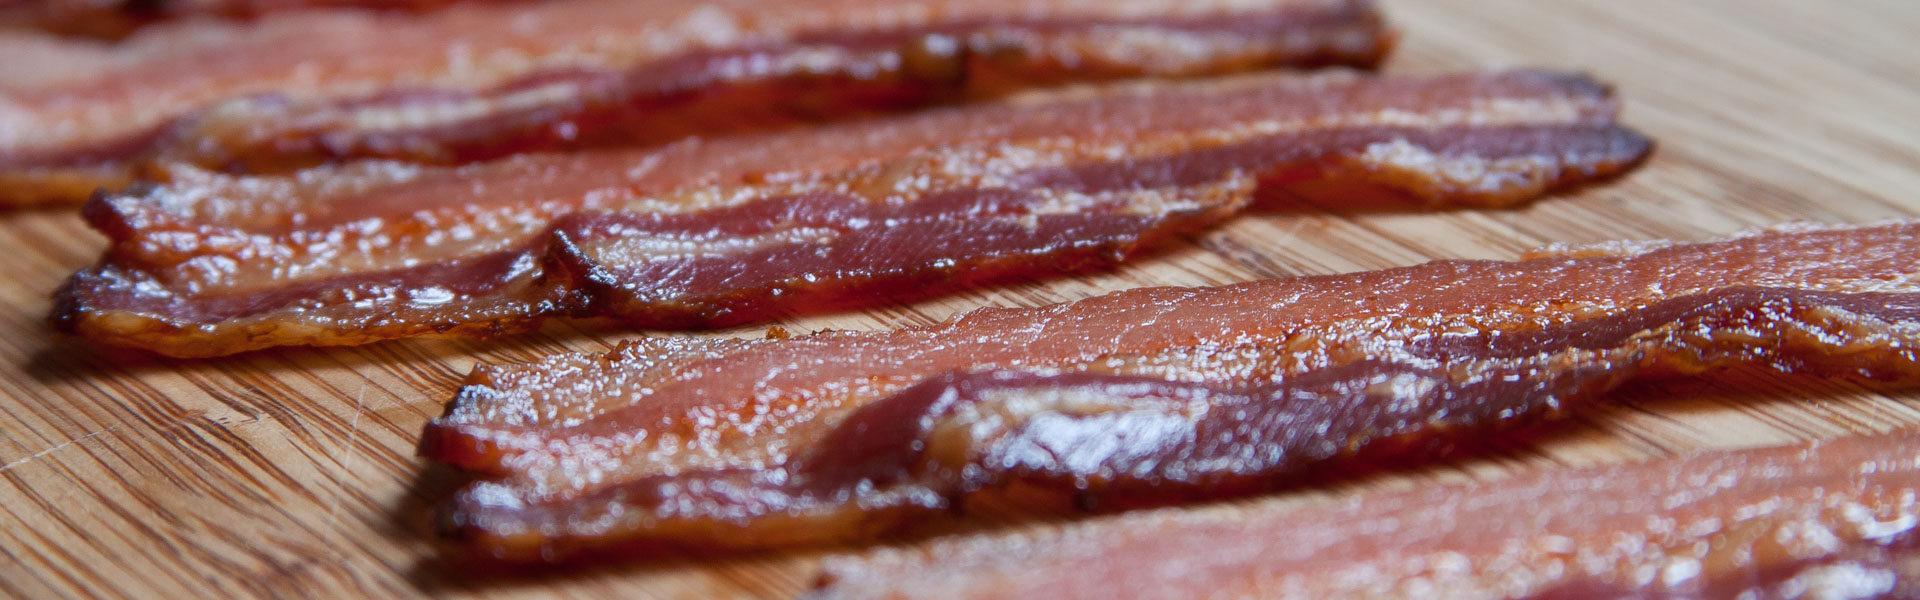 Bacon front